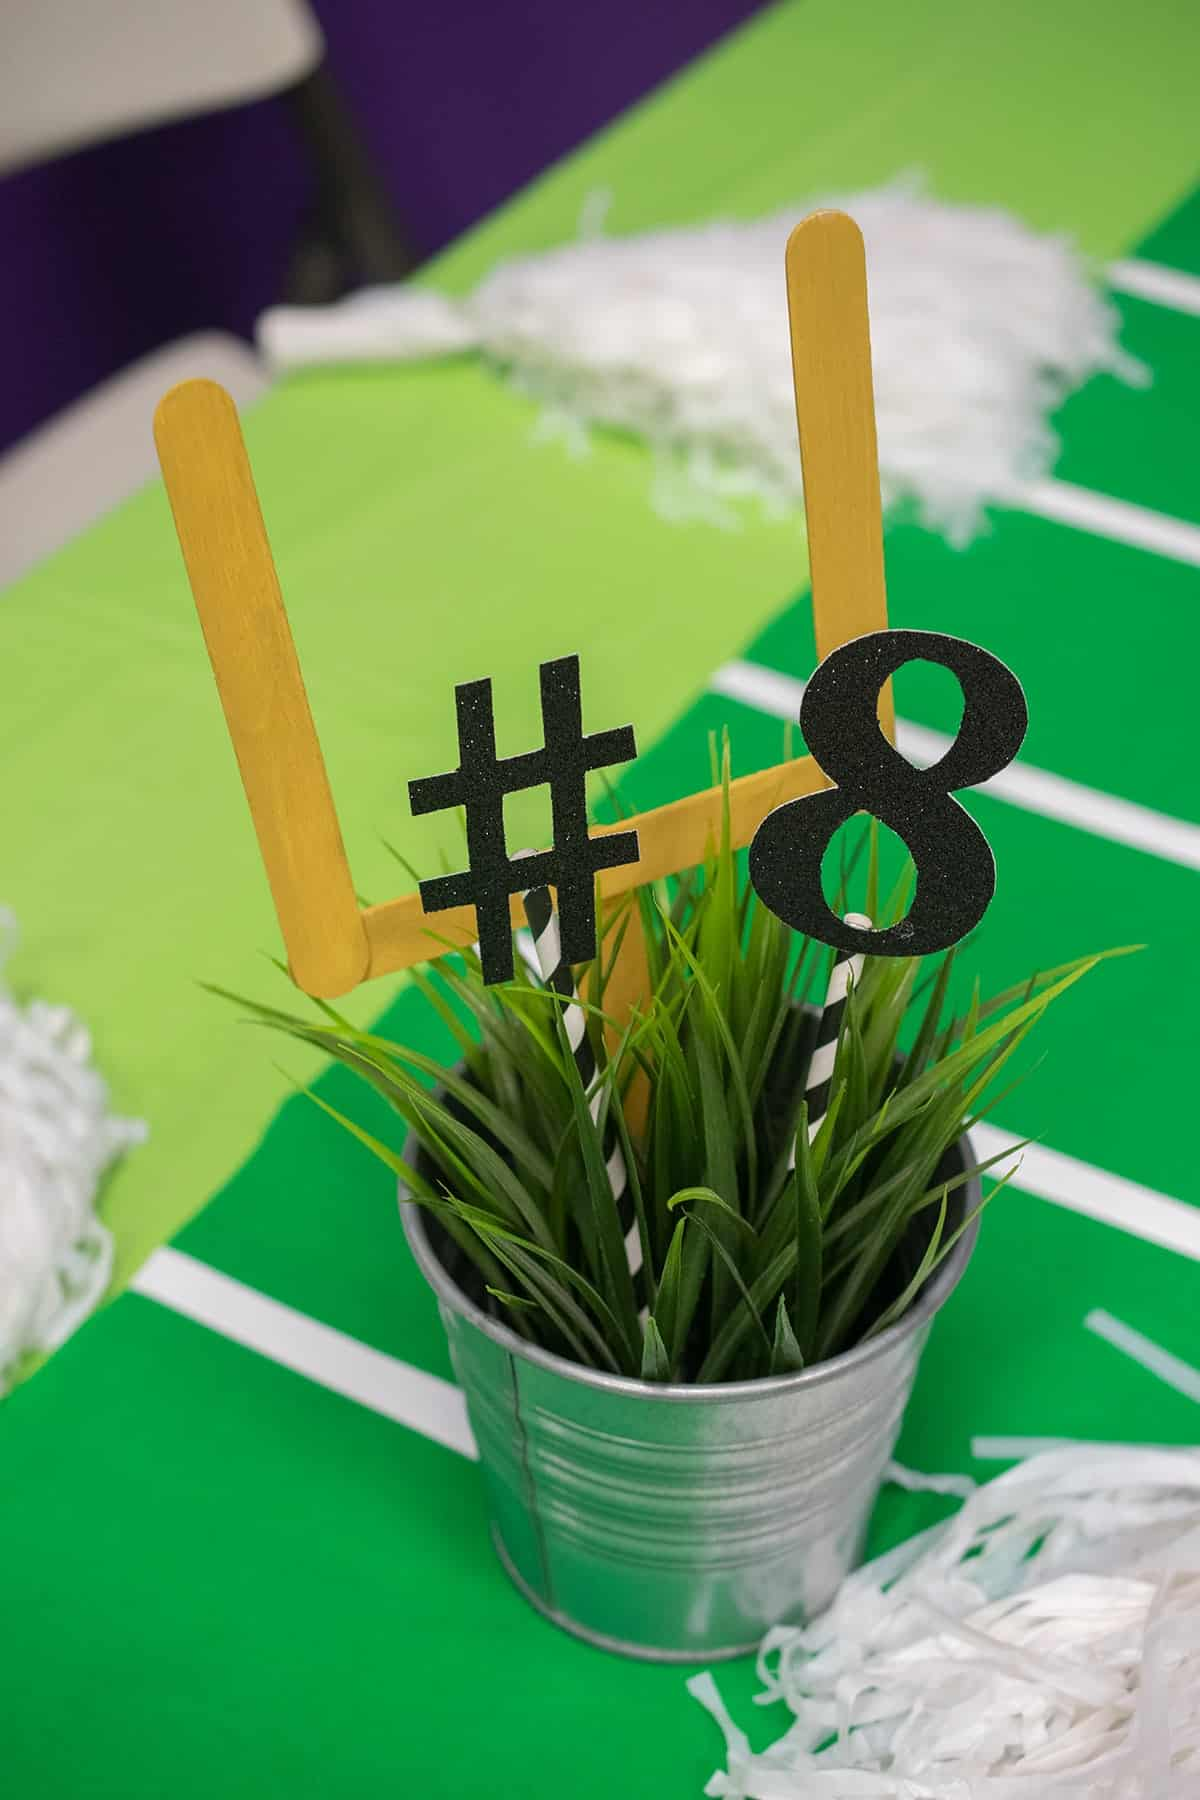 Kid's party table centerpiece mini field goal made of popsicle sticks in small metal potted grass bucket.